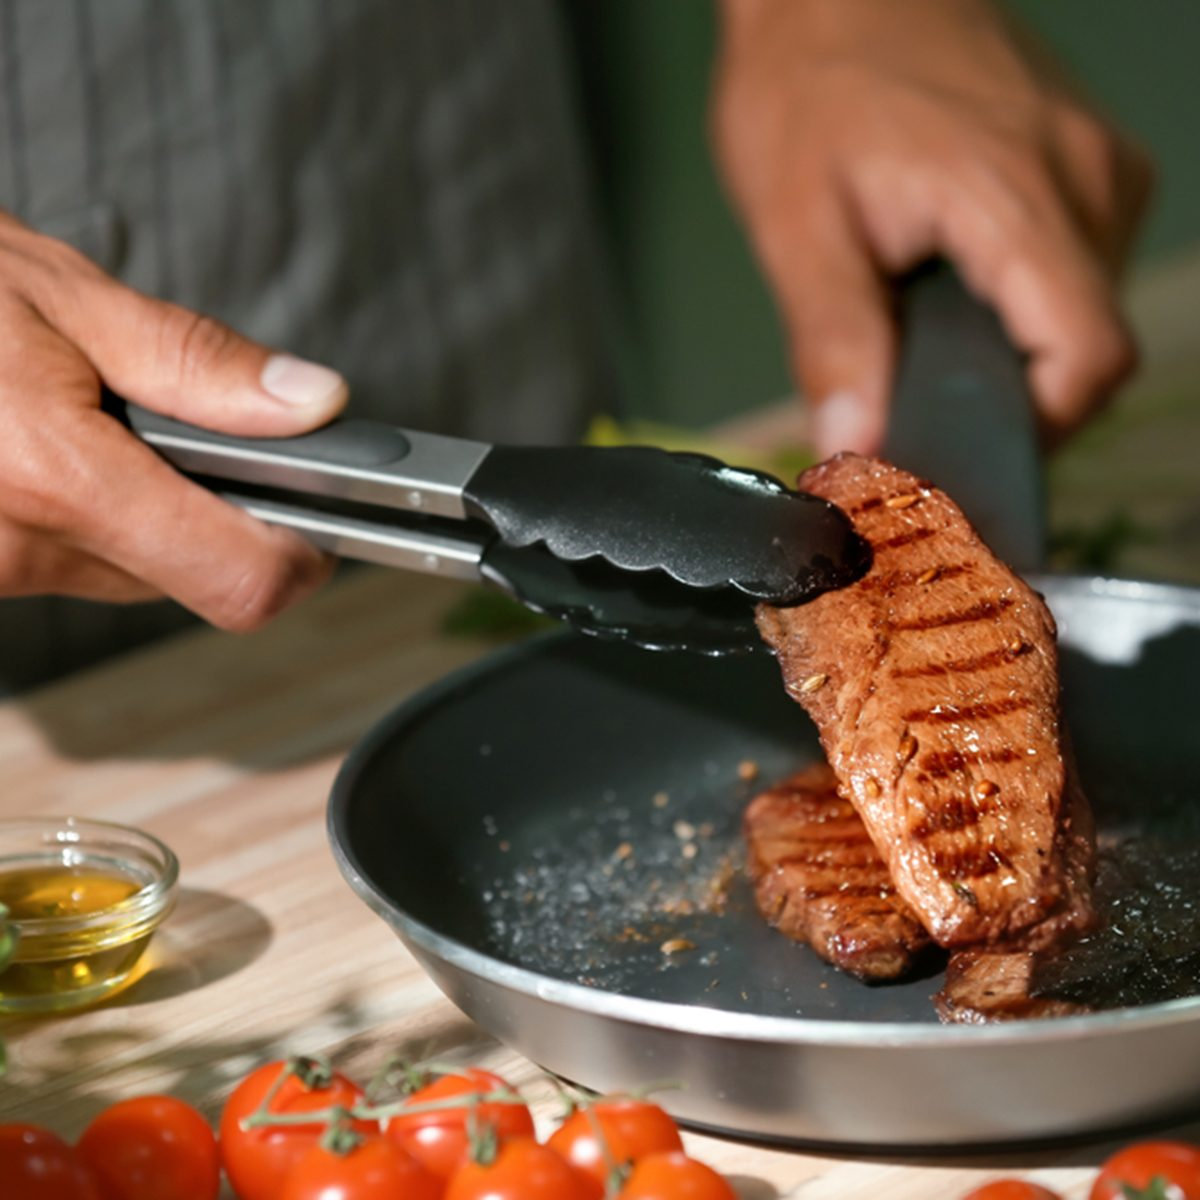 Man holding delicious roasted meat with tongs in kitchen